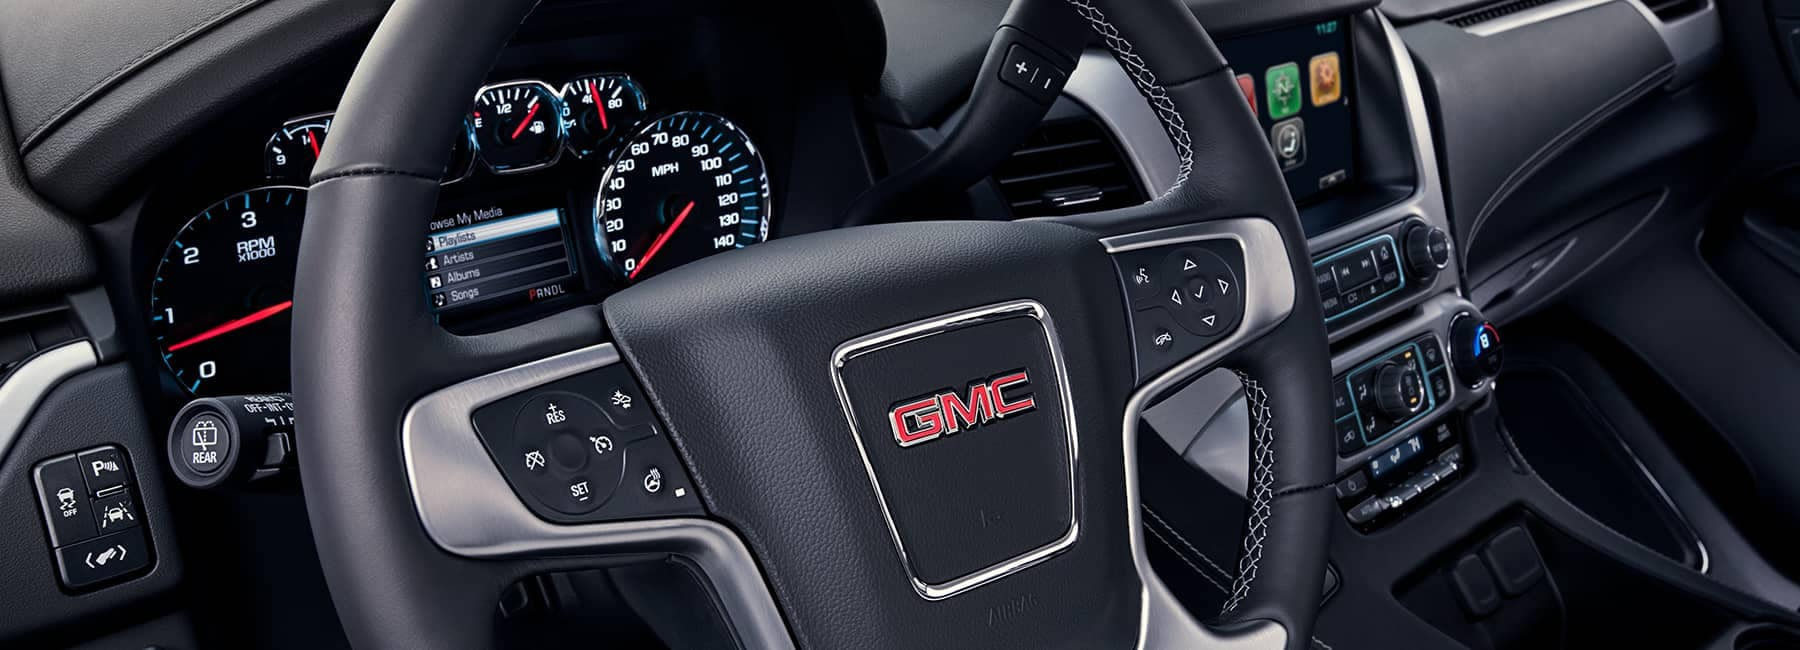 GMC Steering wheel